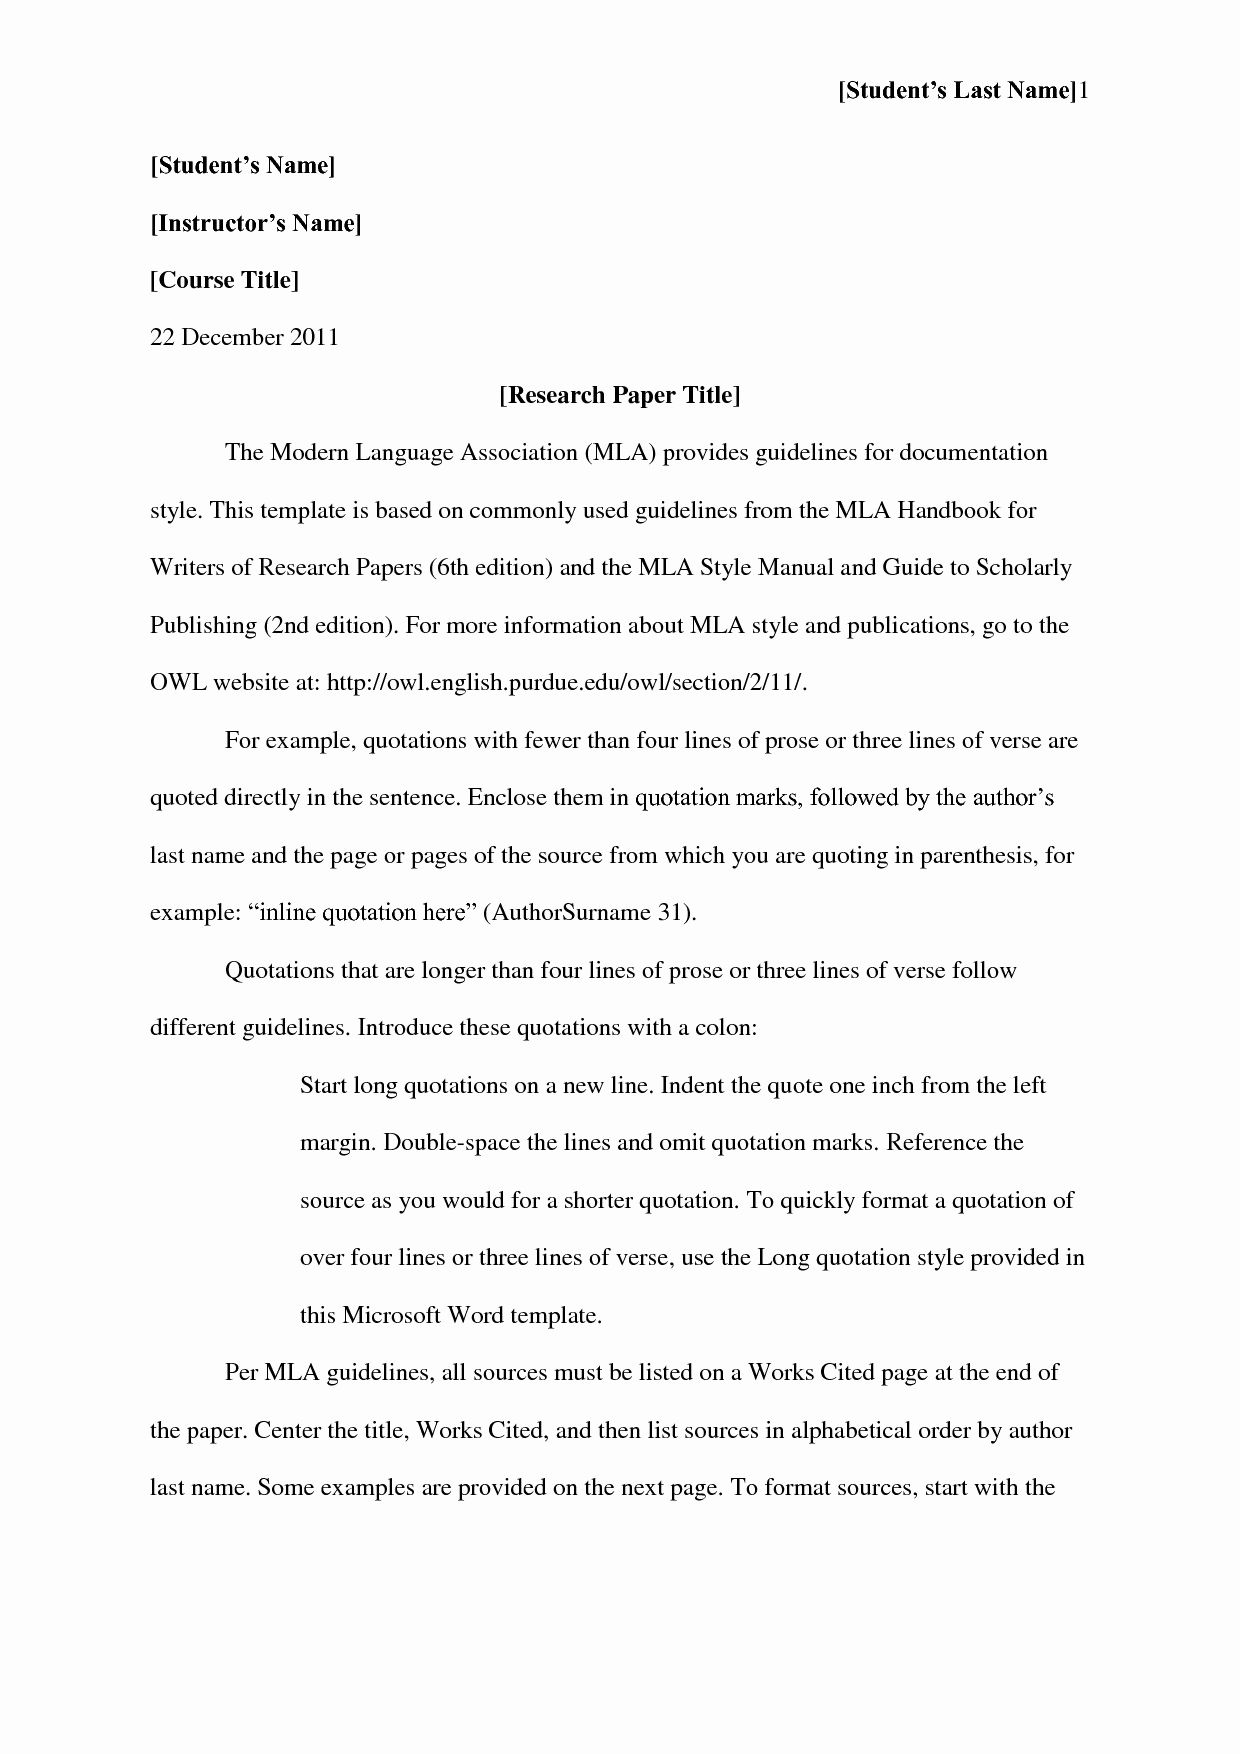 024 Mla Title Page Template Awesome Format Works Cited Scarlet Letter Best Of Apa Style Essay Example Research Paper Amazing With Full